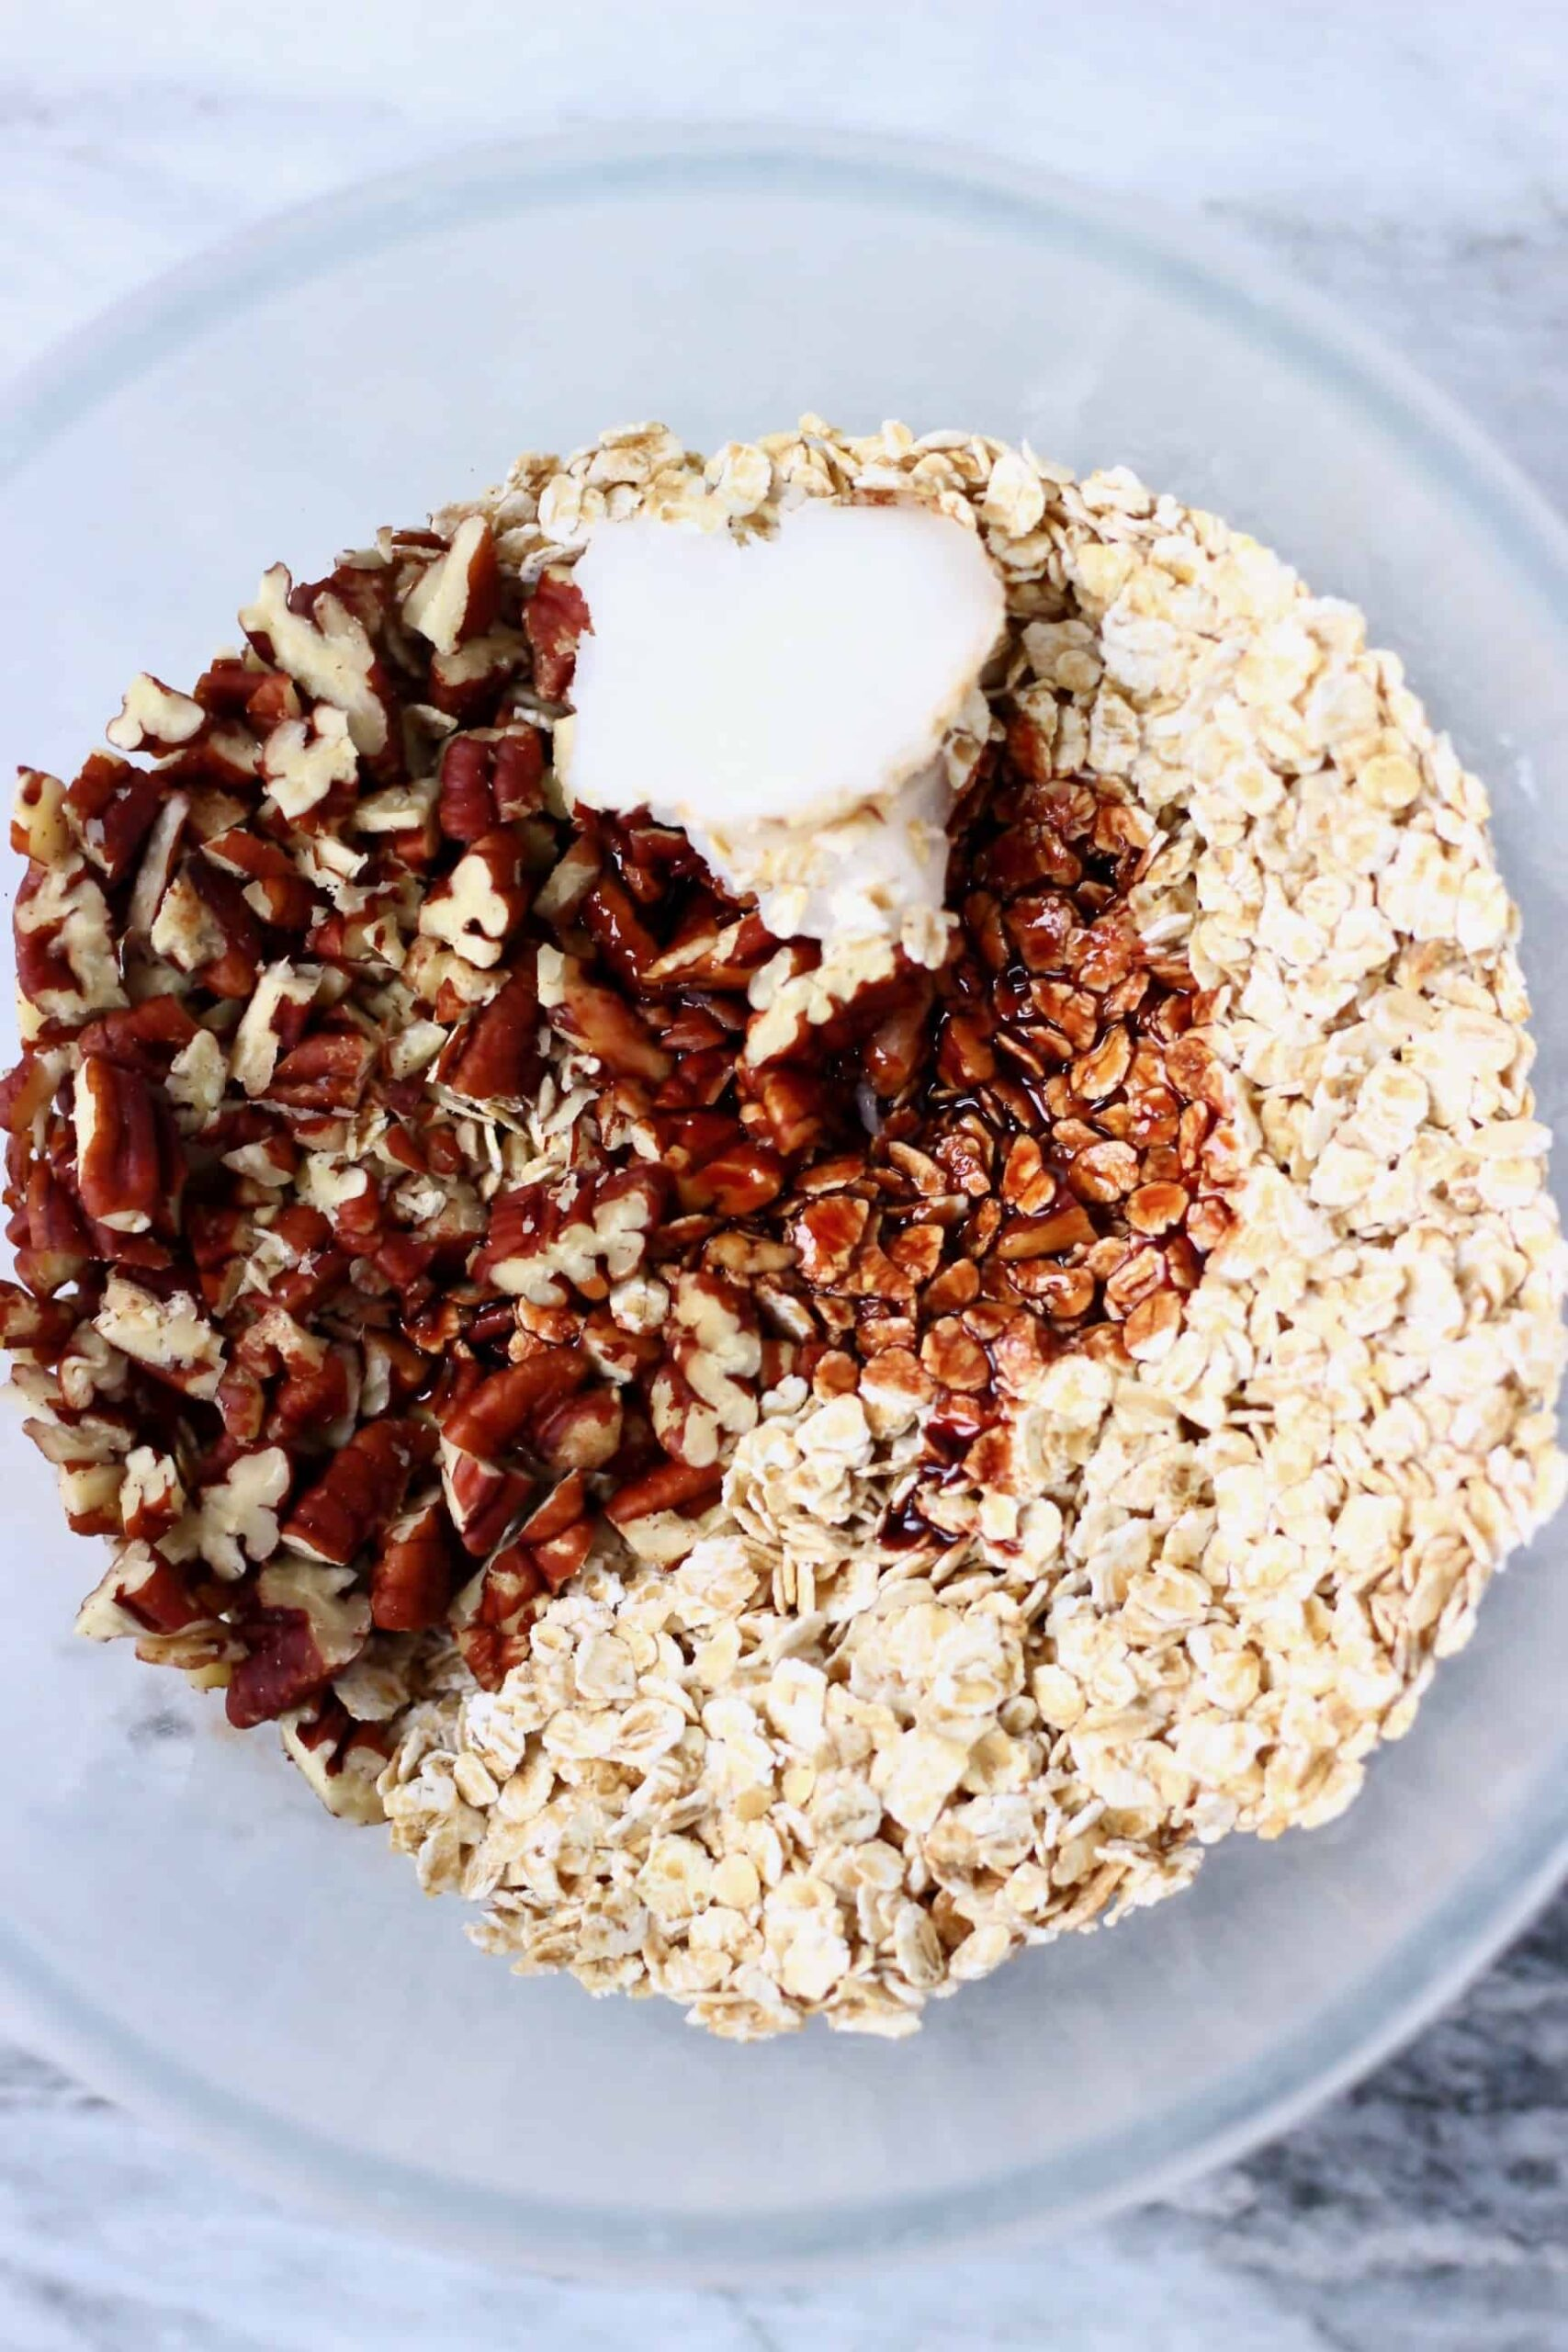 Chopped pecan nuts, coconut oil and oats in a mixing bowl